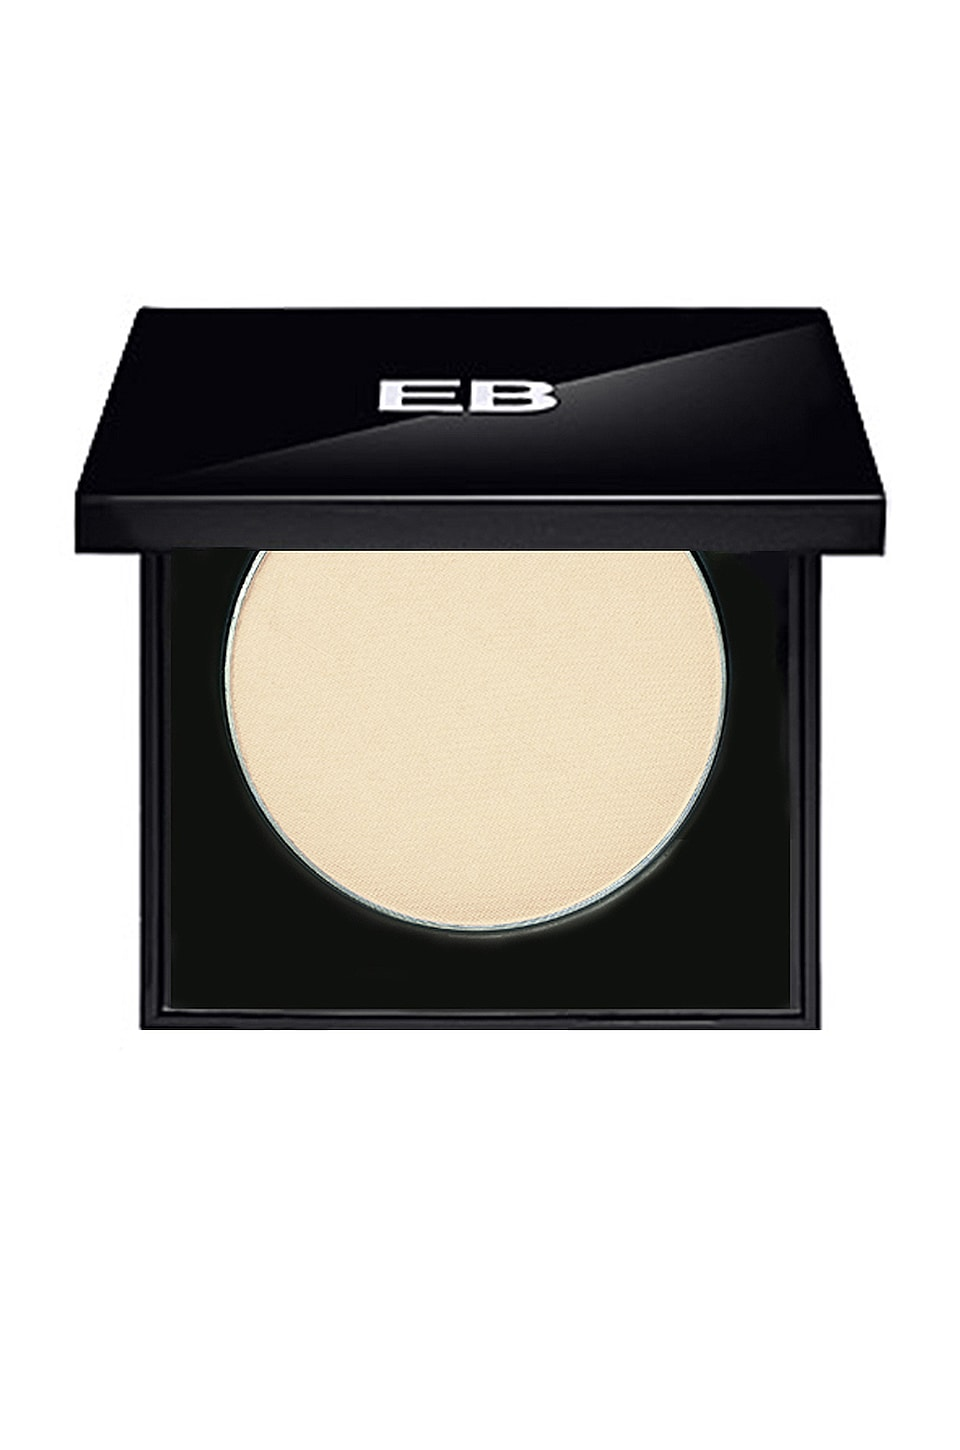 Ultra Luminous Eyeshadow